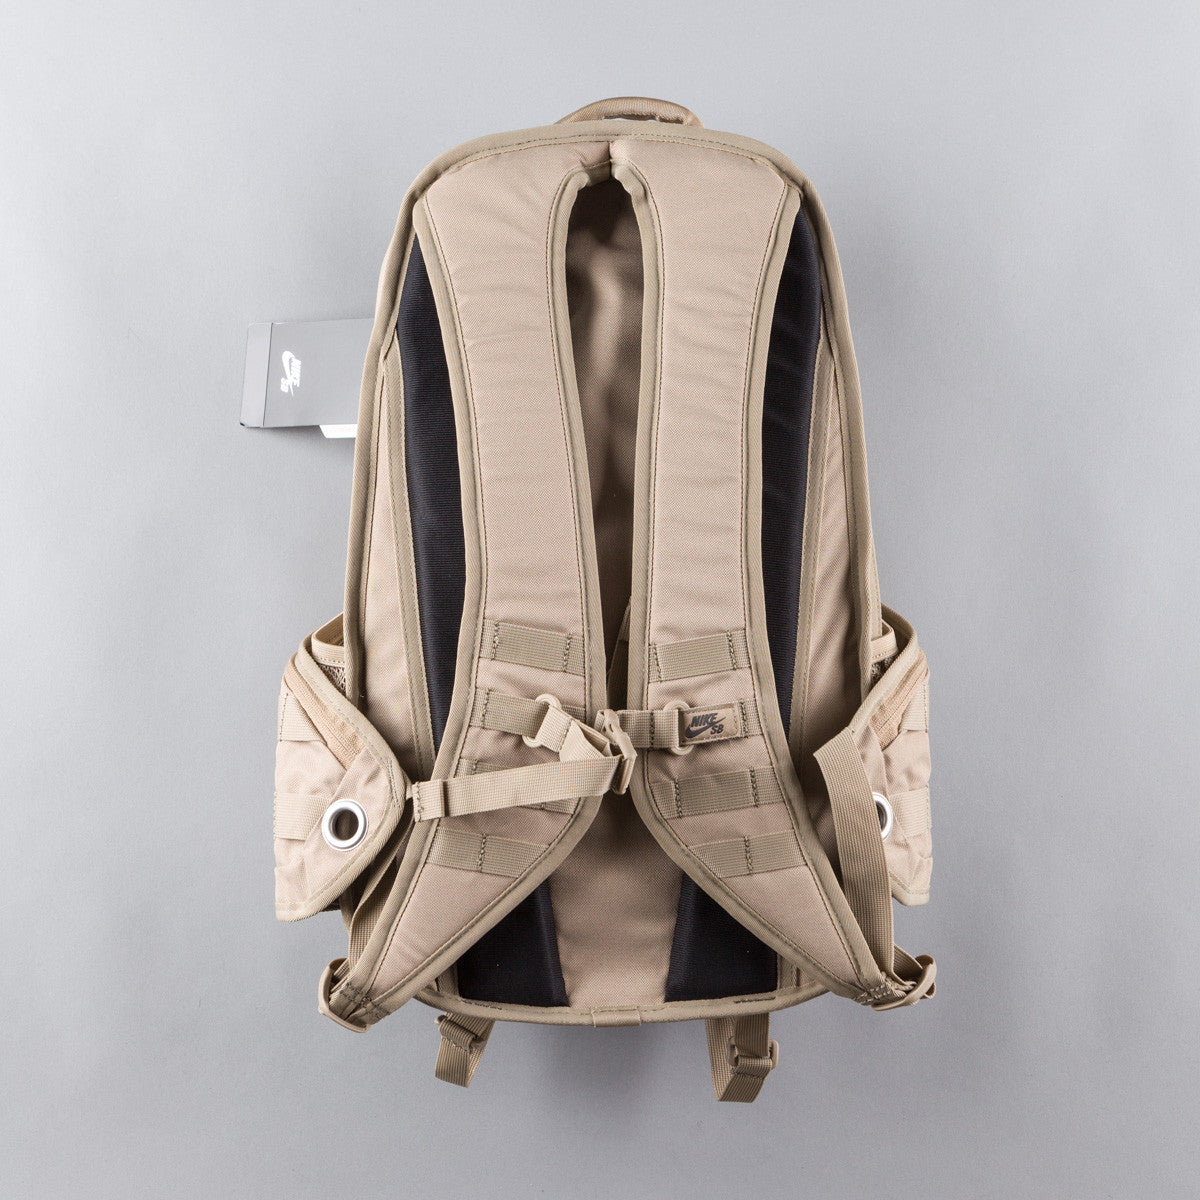 Nike SB RPM Backpack - Khaki / Khaki / Black